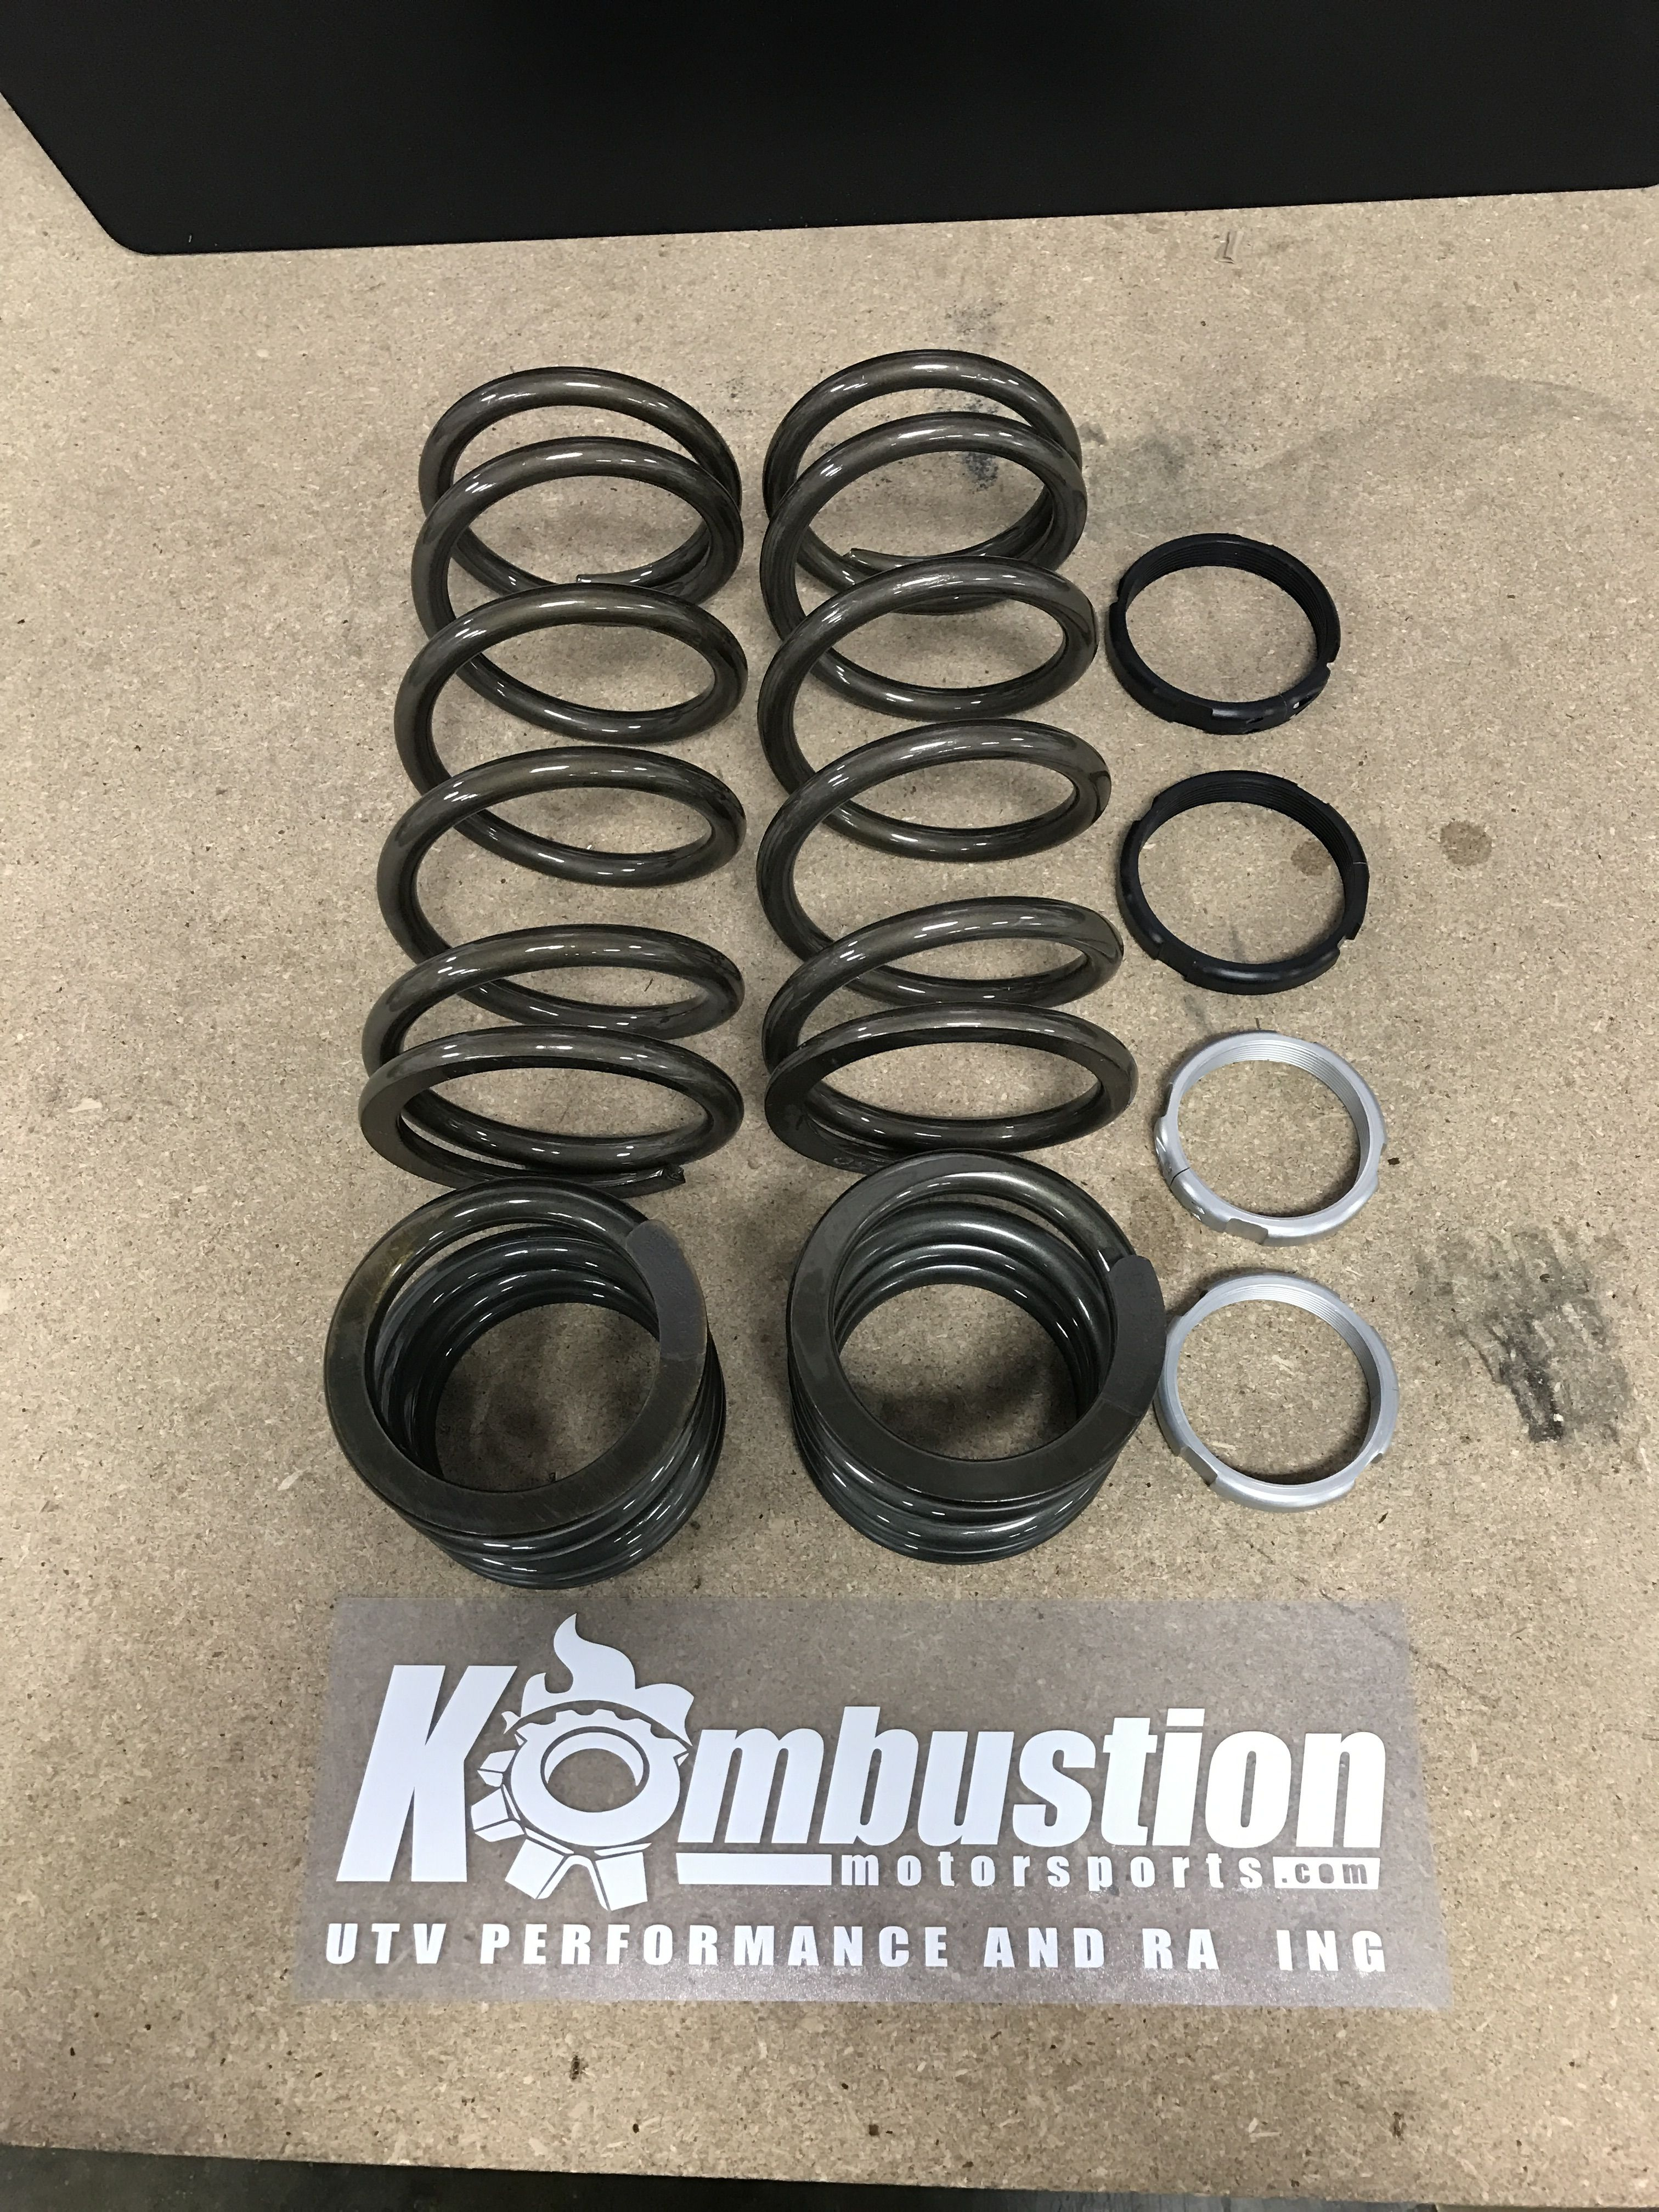 Zbroz Racing dual rate spring kit package for the Turbo and